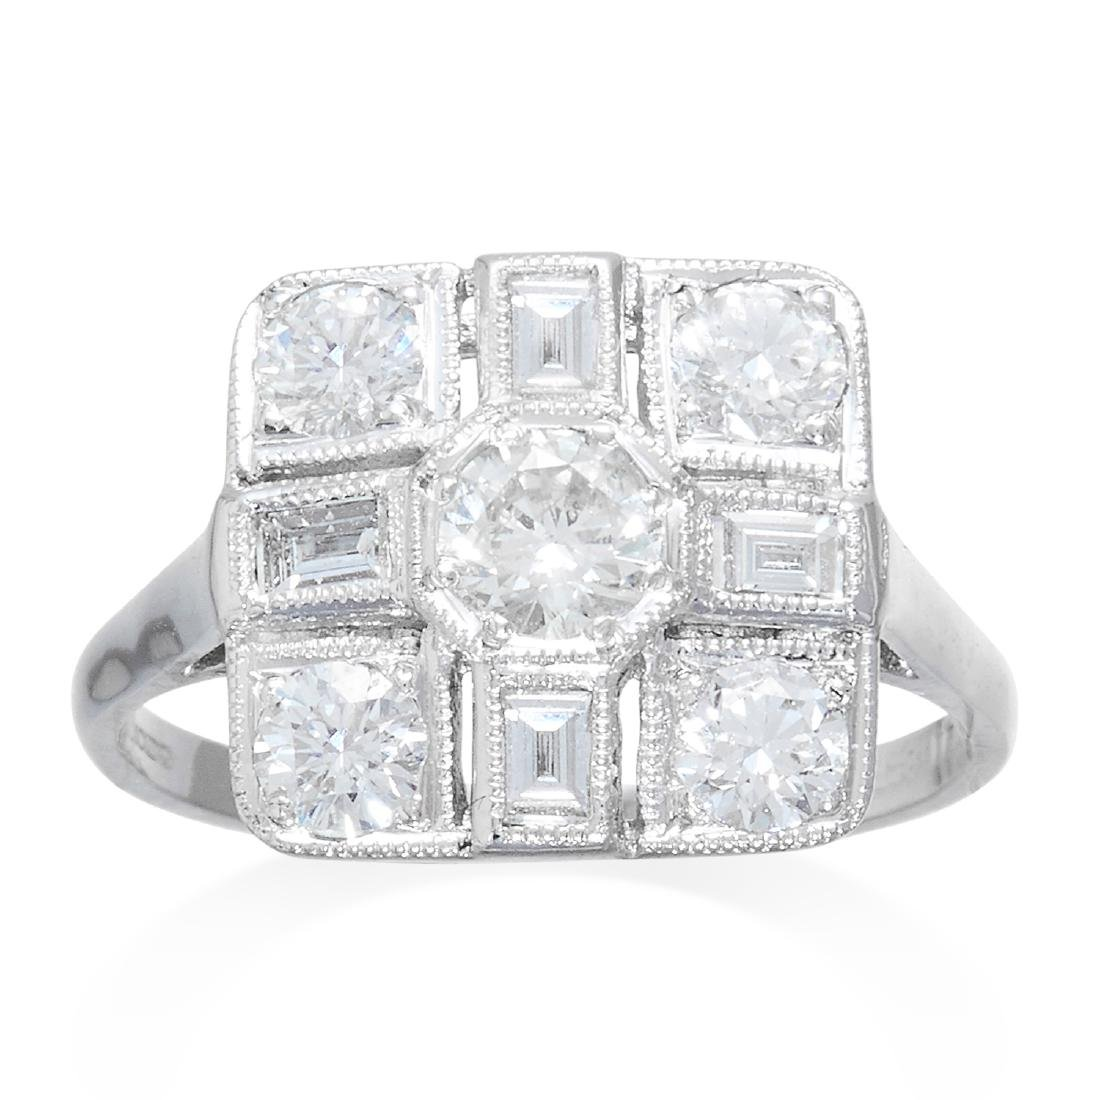 A DIAMOND DRESS RING in 18ct white gold, the square